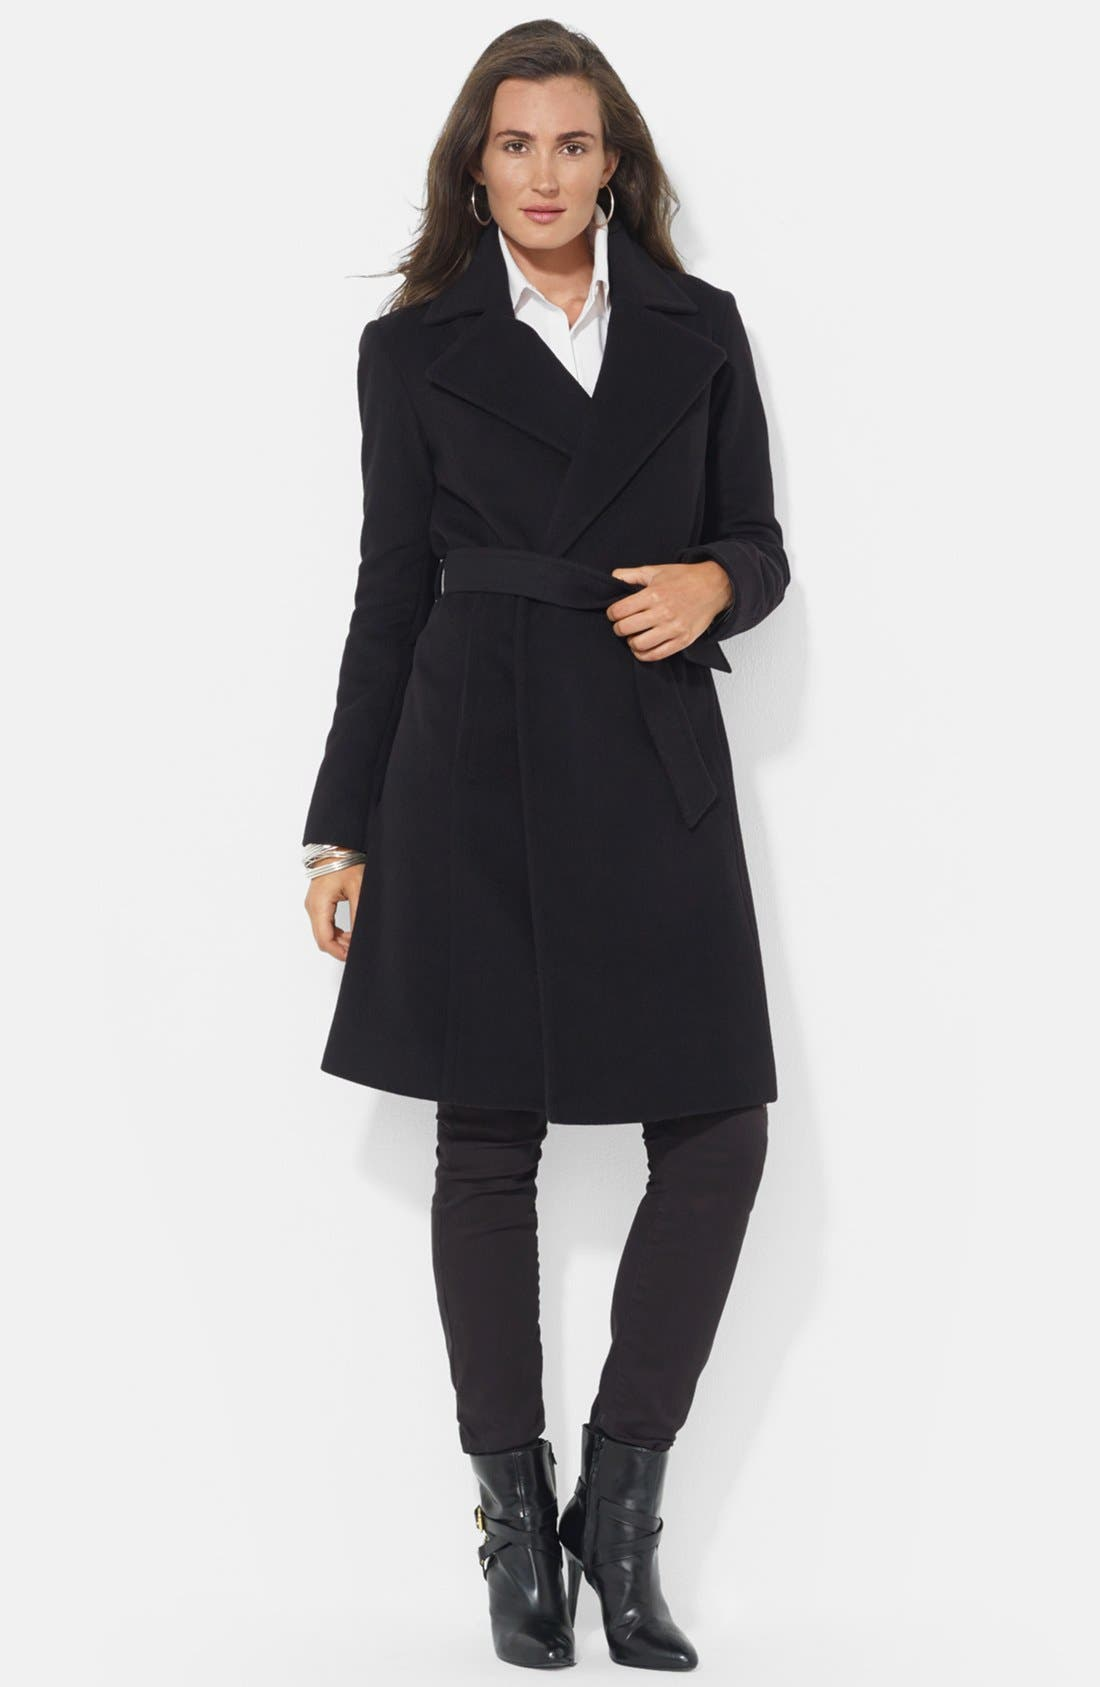 Black Coats & Jackets for Women | Nordstrom | Nordstrom